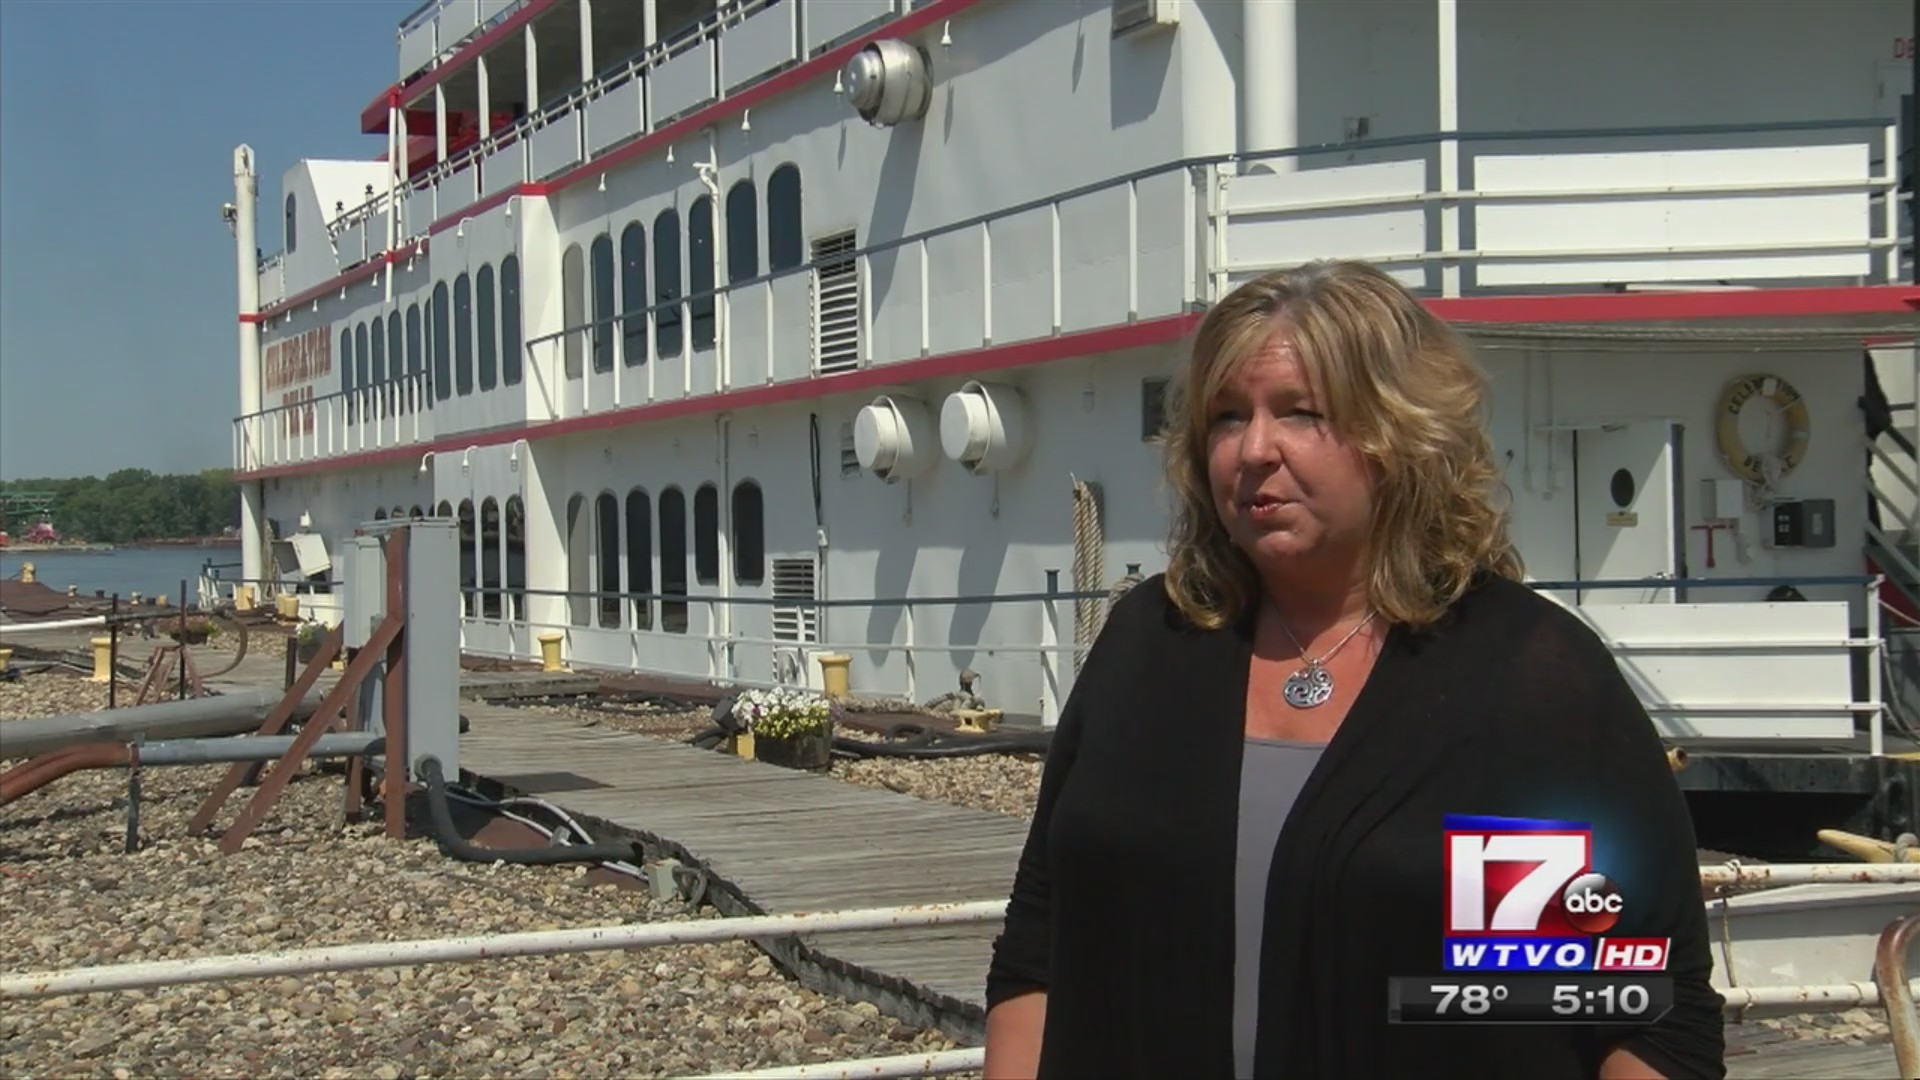 Destination Illinois: Take a cruise on the Celebration Belle riverboat